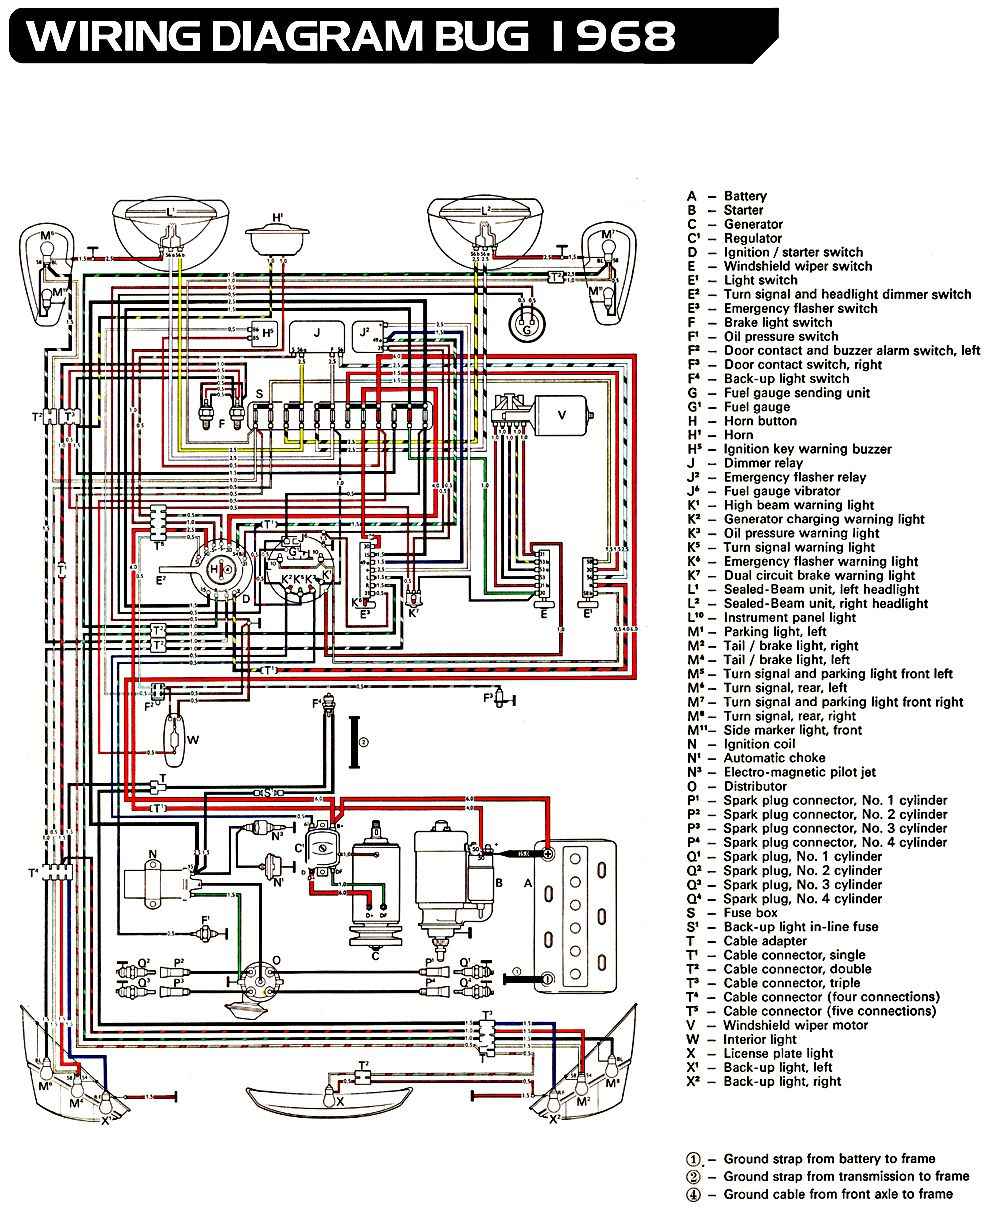 1969 volkswagen beetle ignition wiring diagram 1977 vw beetle ignition wiring diagram